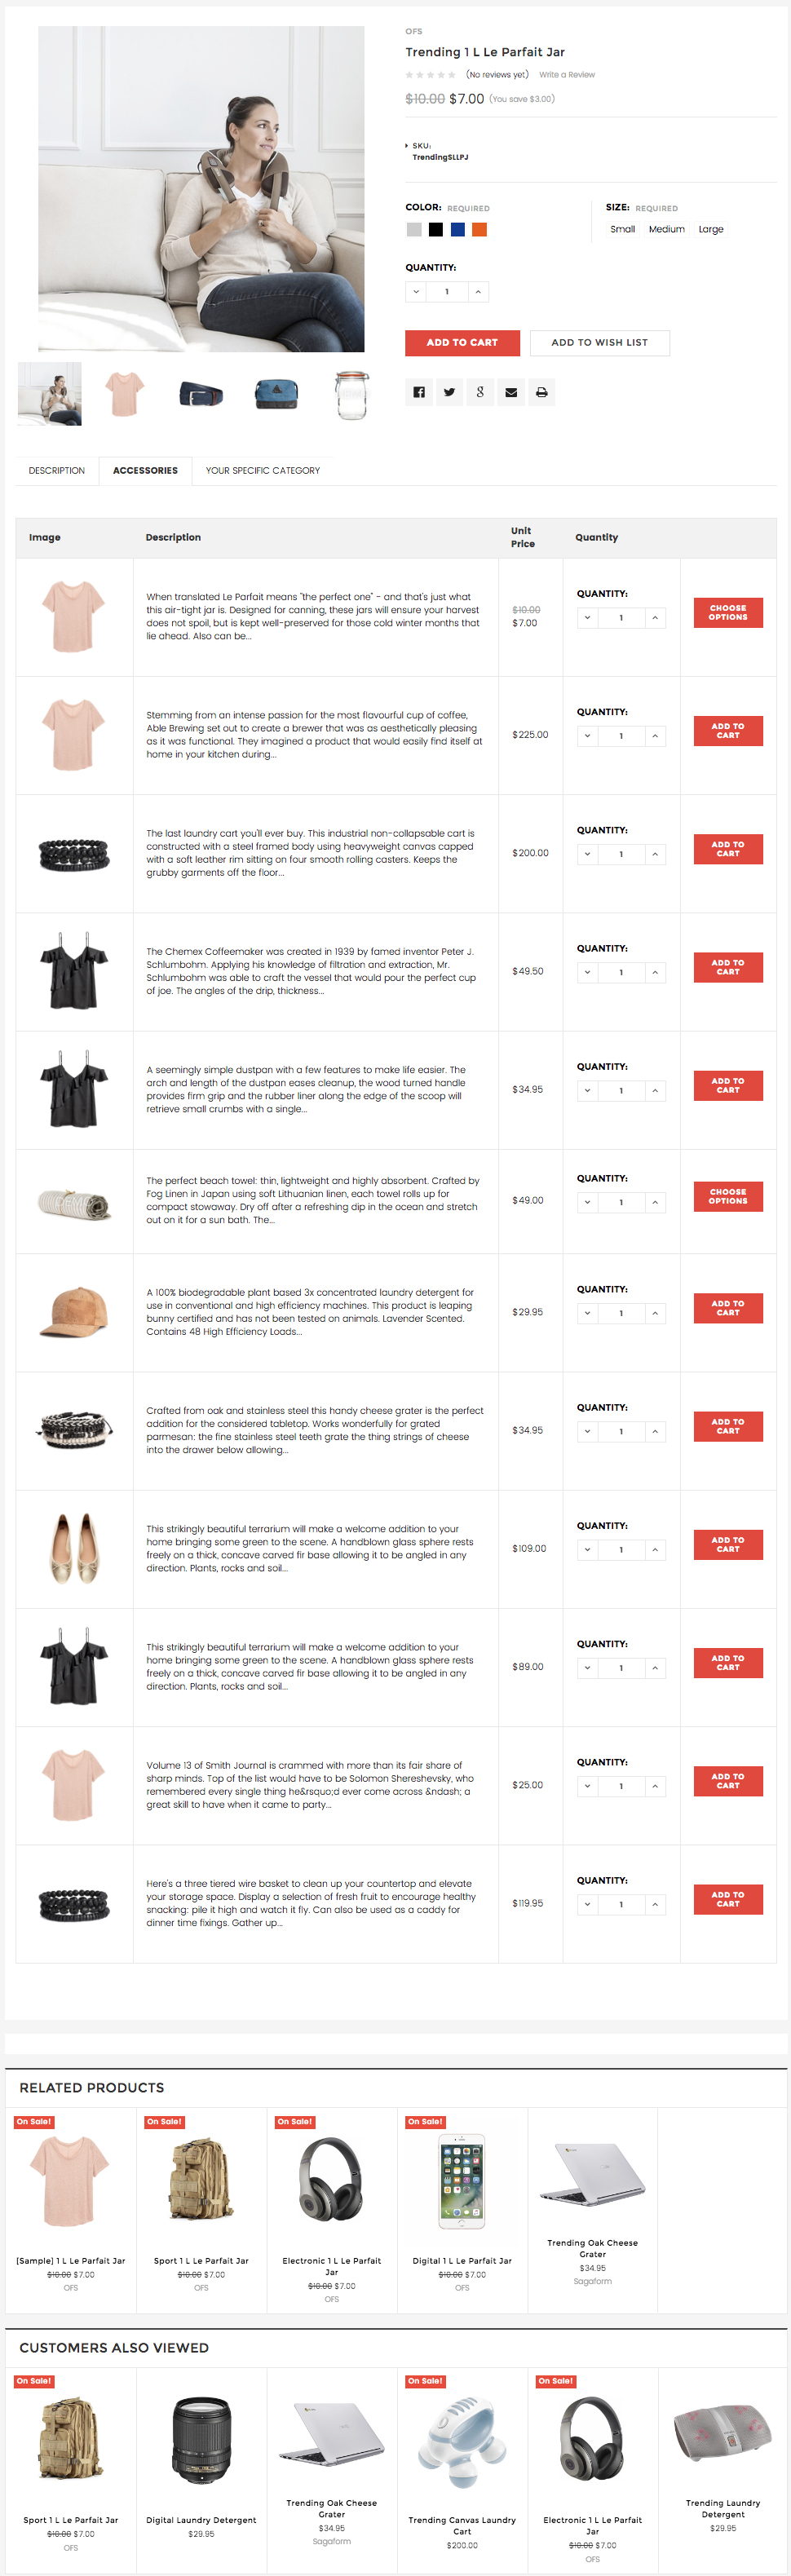 Sample product layout with associated products